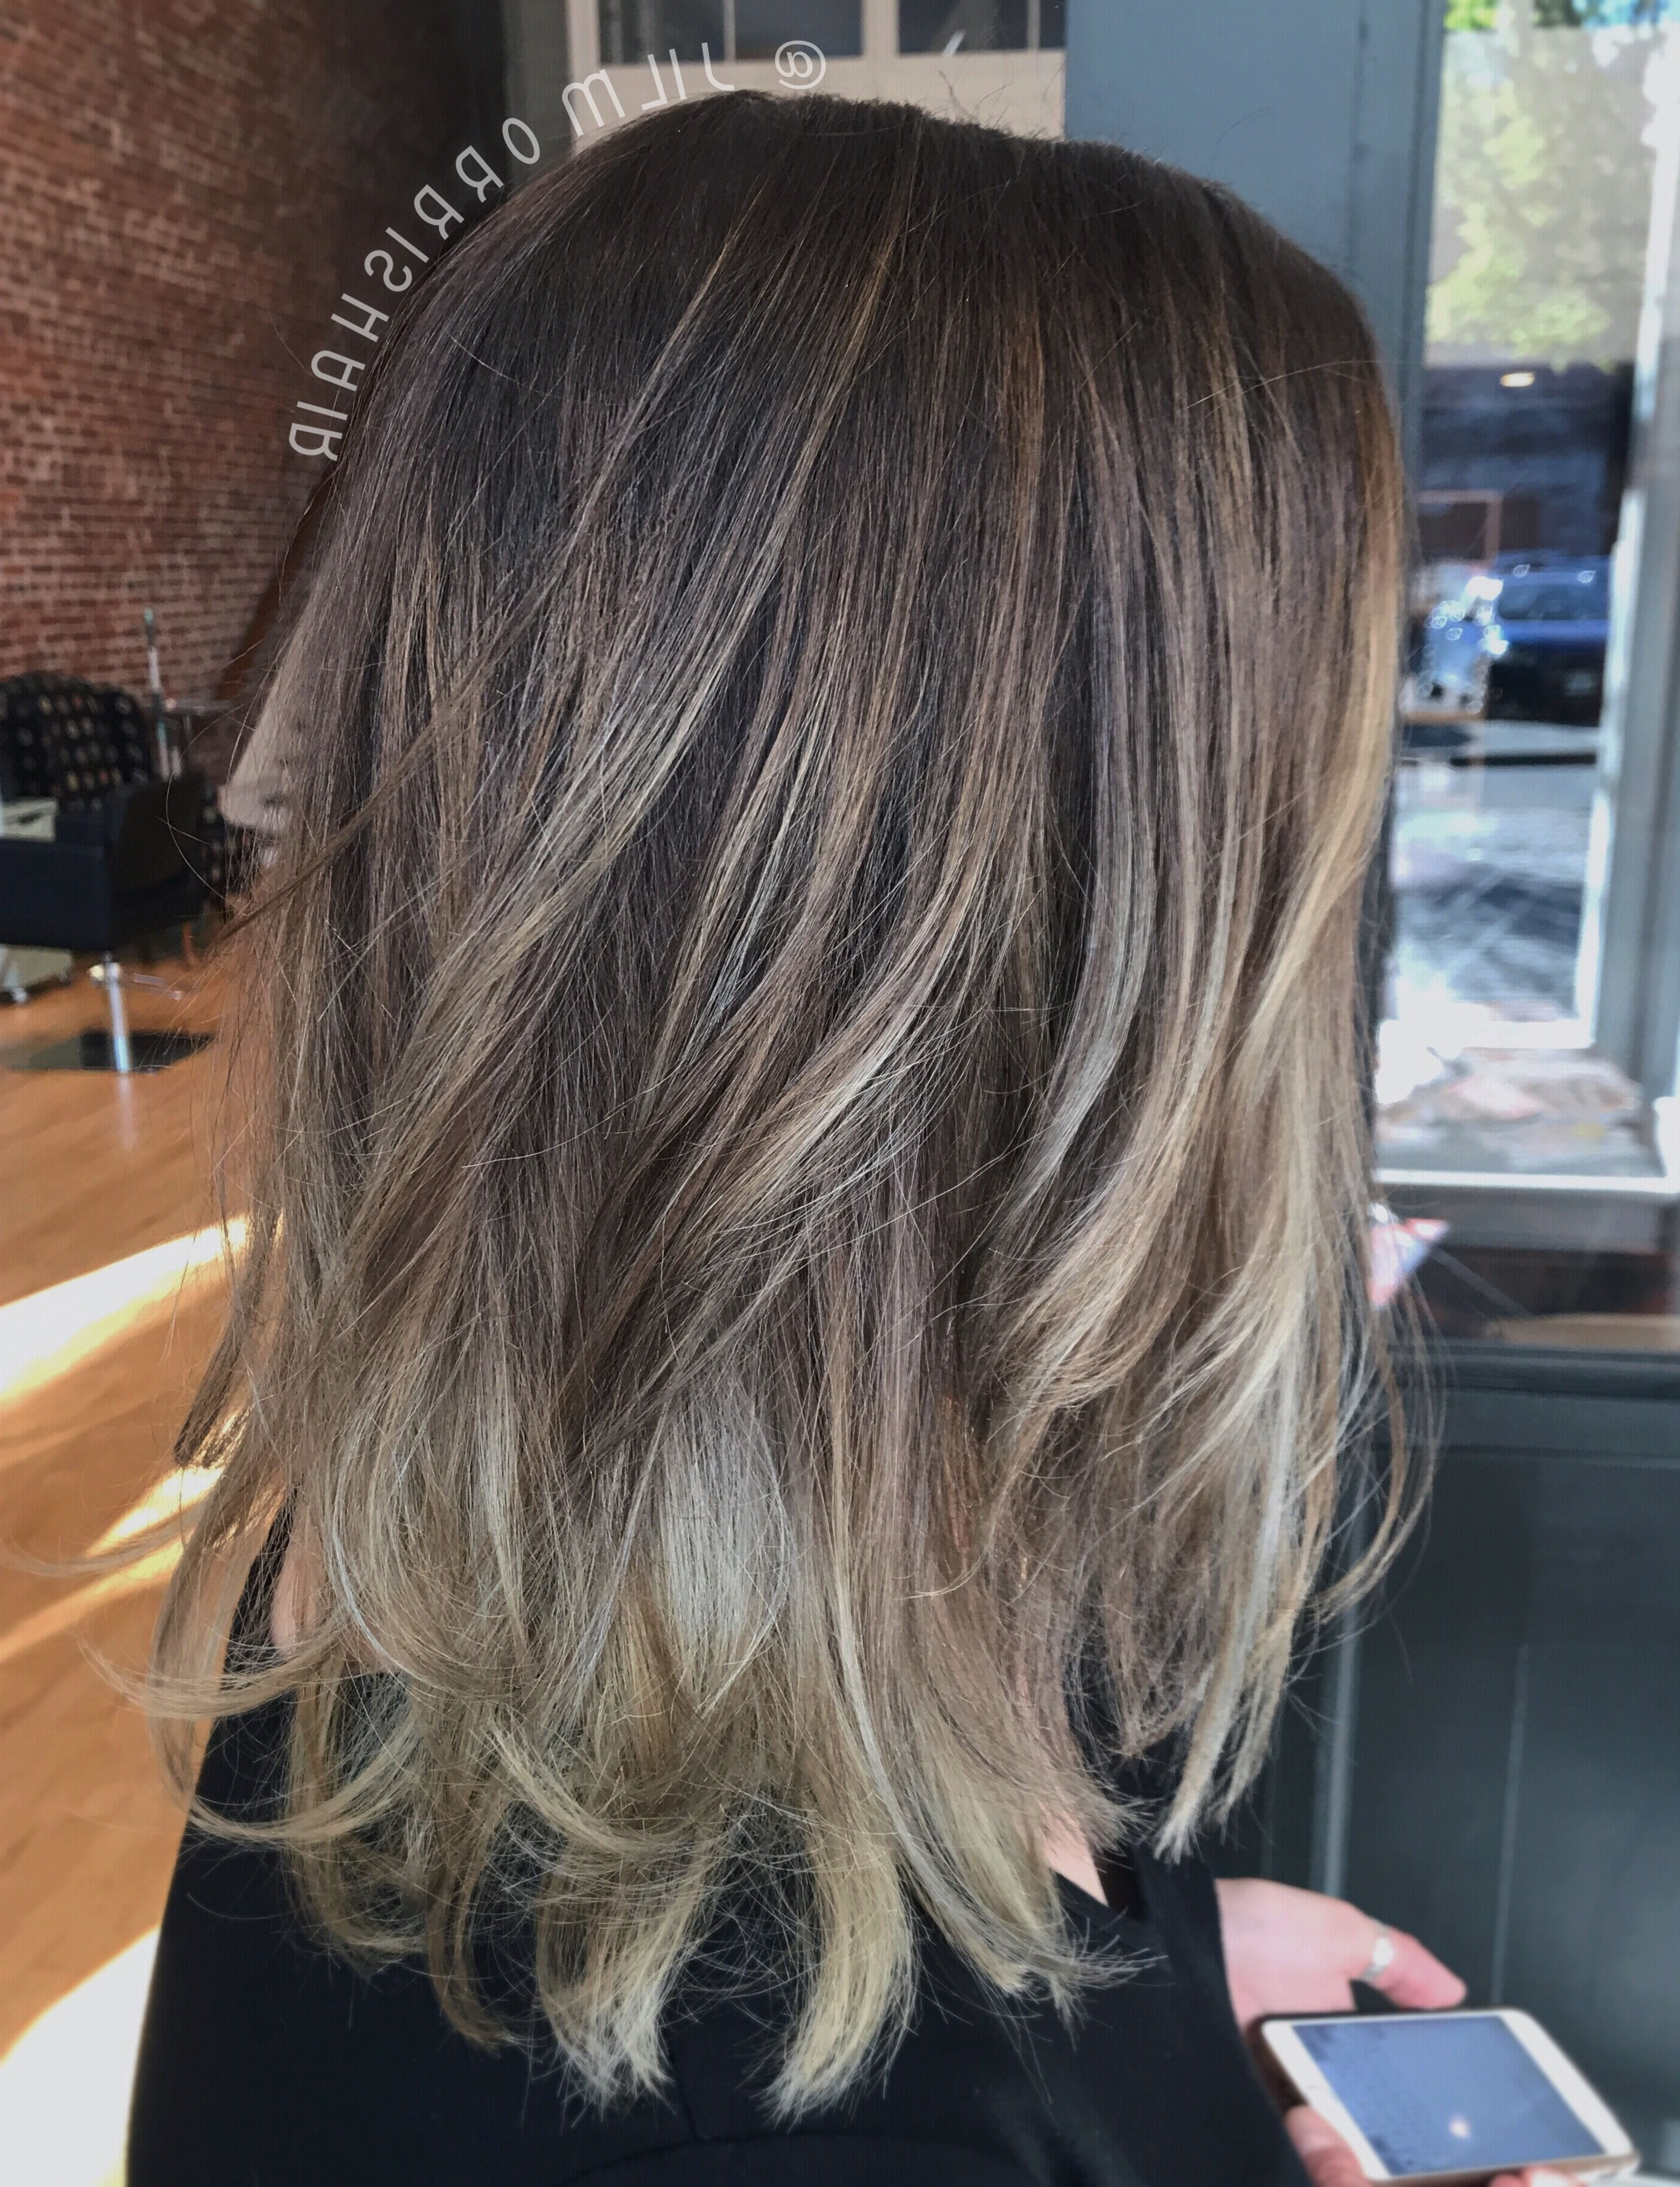 Dark Ash Blonde Sombré, Balayage Highlights With Rooty Lowlights Throughout Most Current Sunkissed Long Locks Blonde Hairstyles (Gallery 2 of 20)